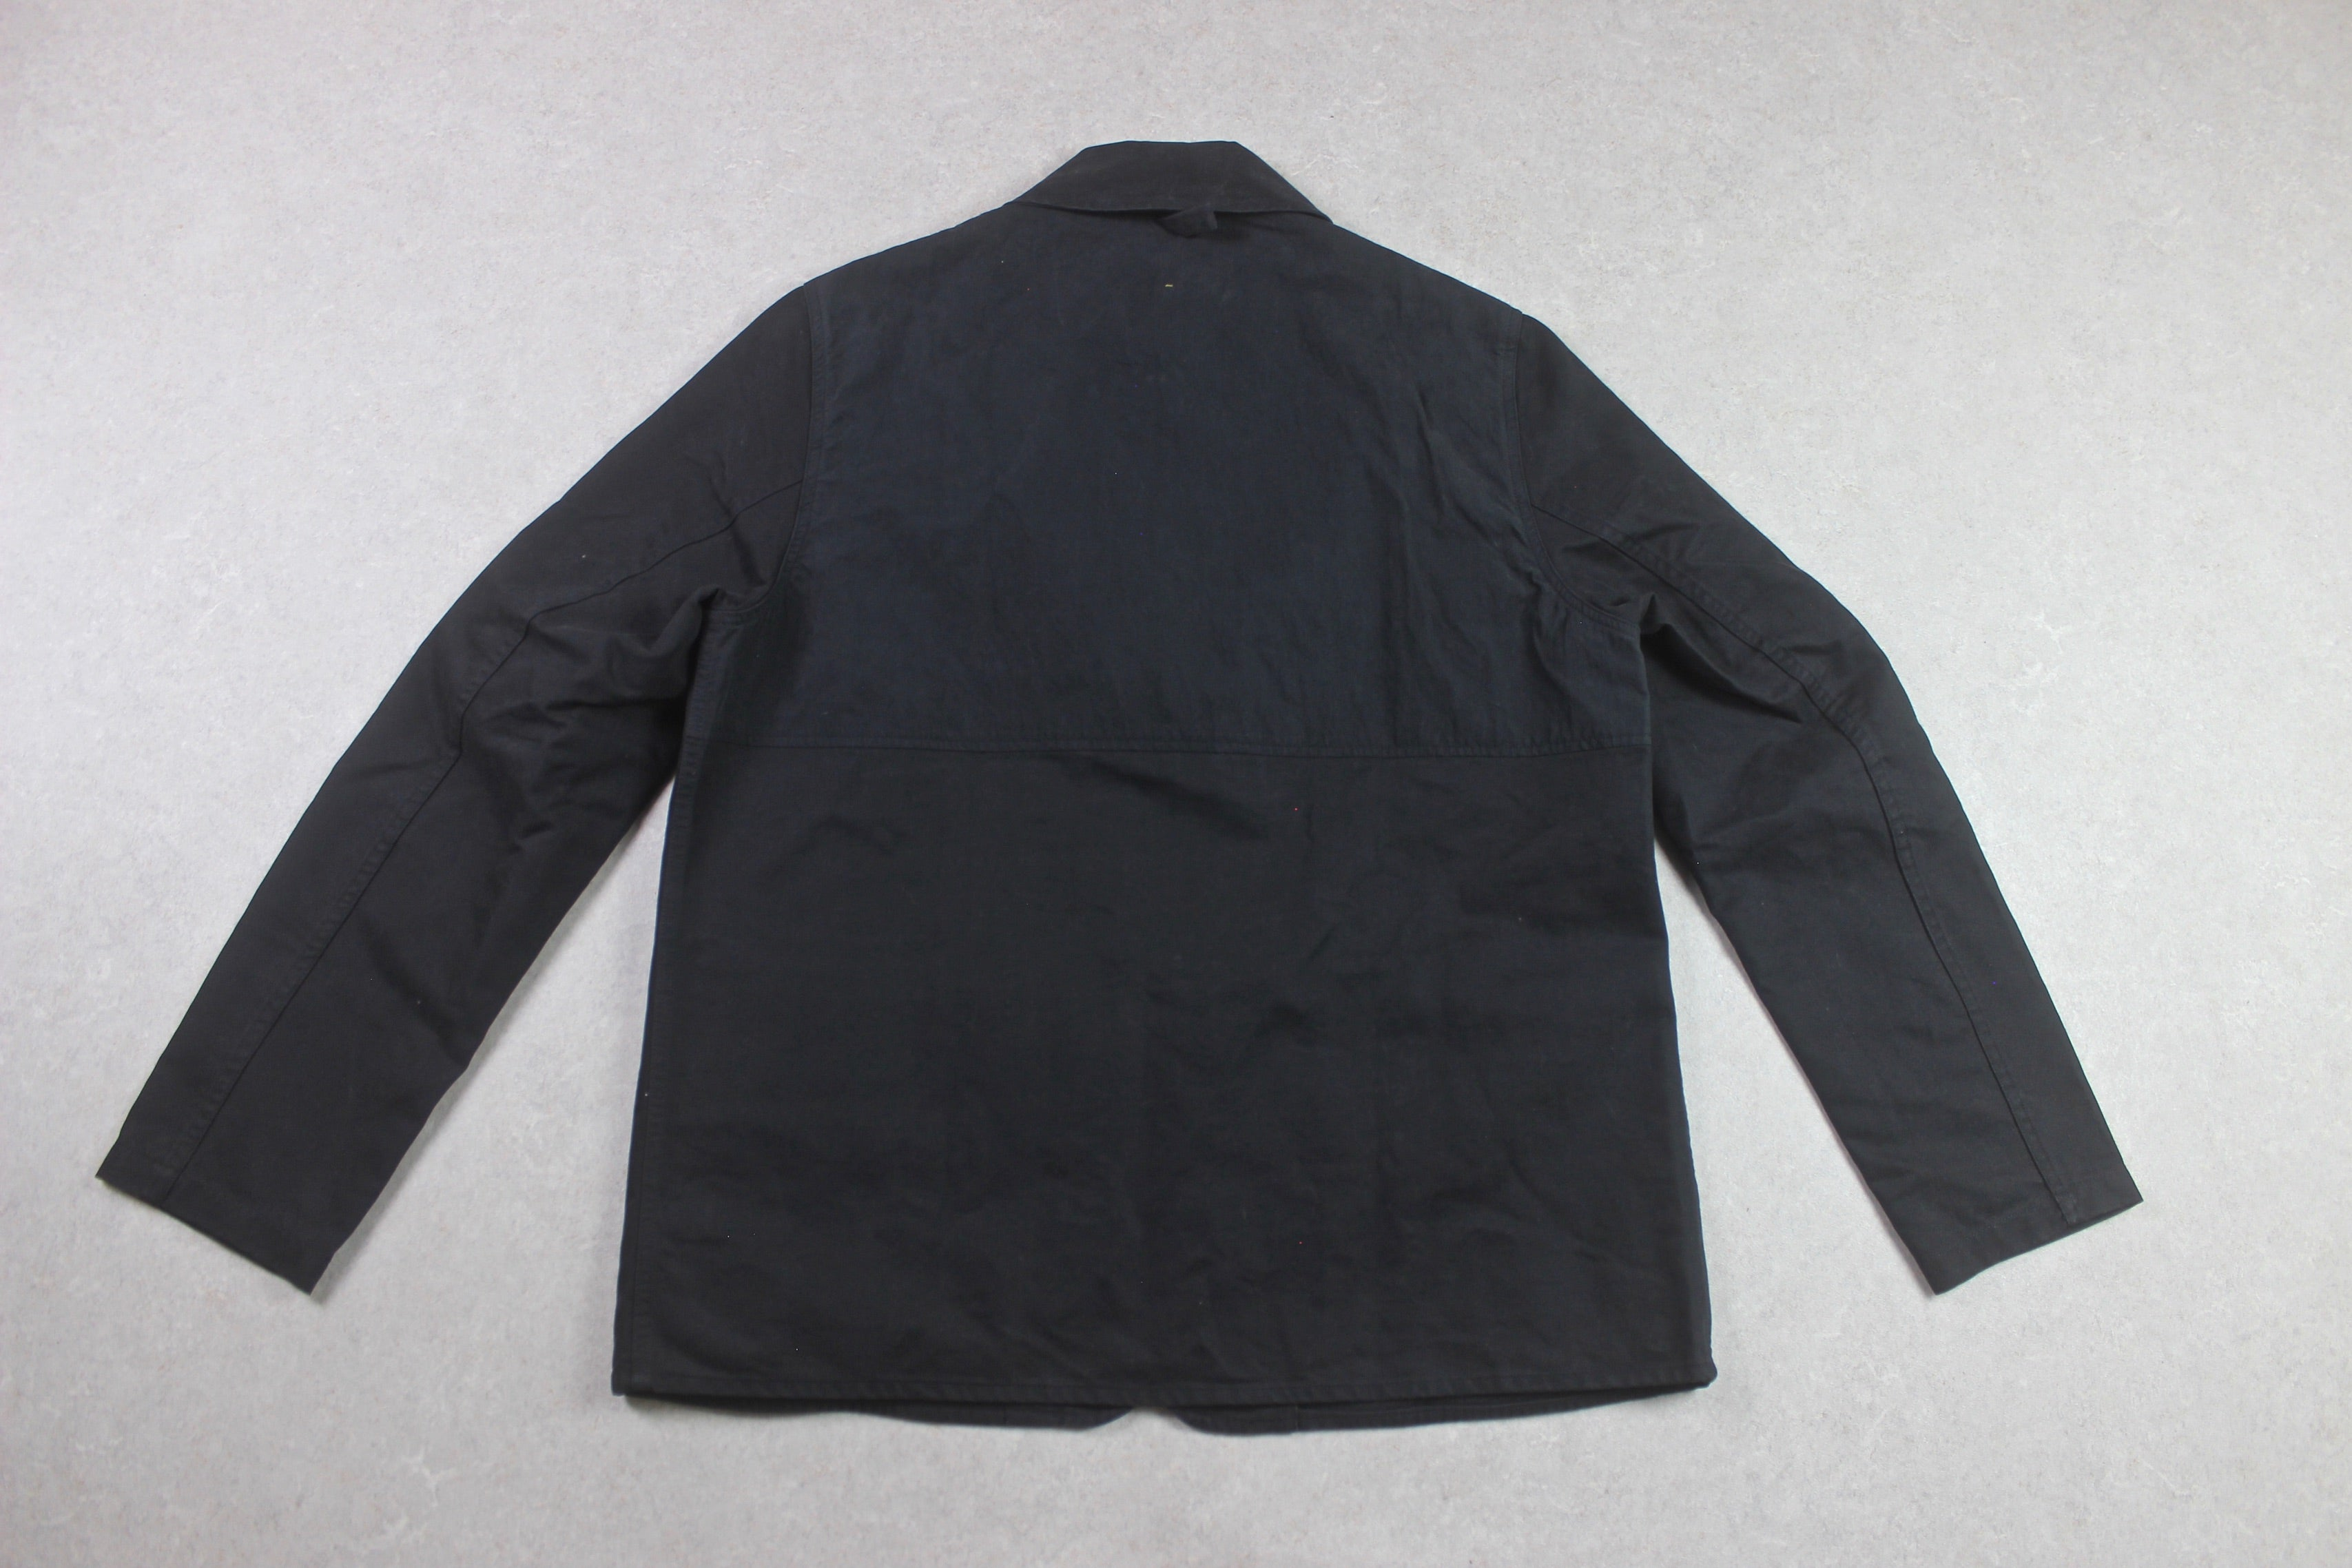 MHL Margaret Howell - Black Cotton Drill Jacket - Black - Medium - Brand New